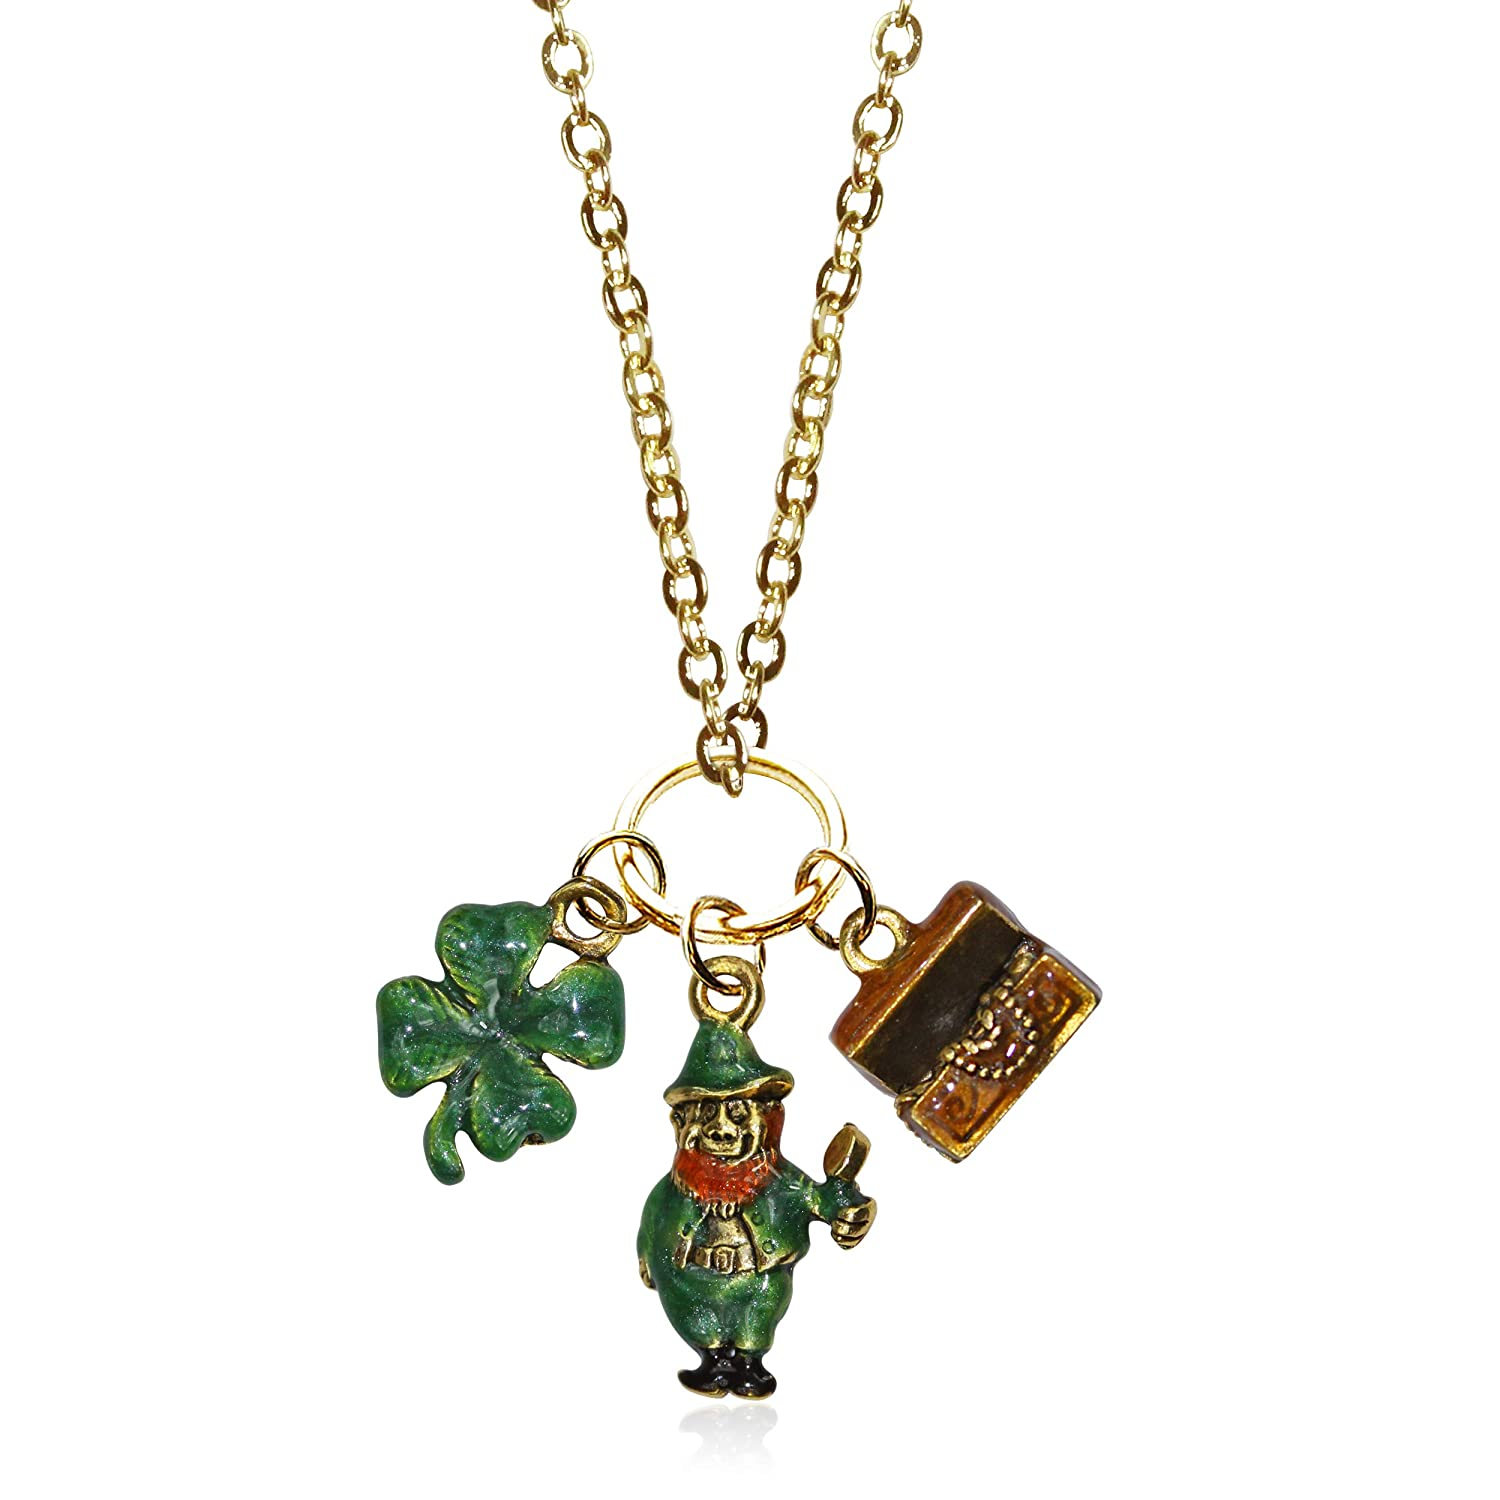 Whimsical Gifts St Patricks Day Charm Necklace in Gold